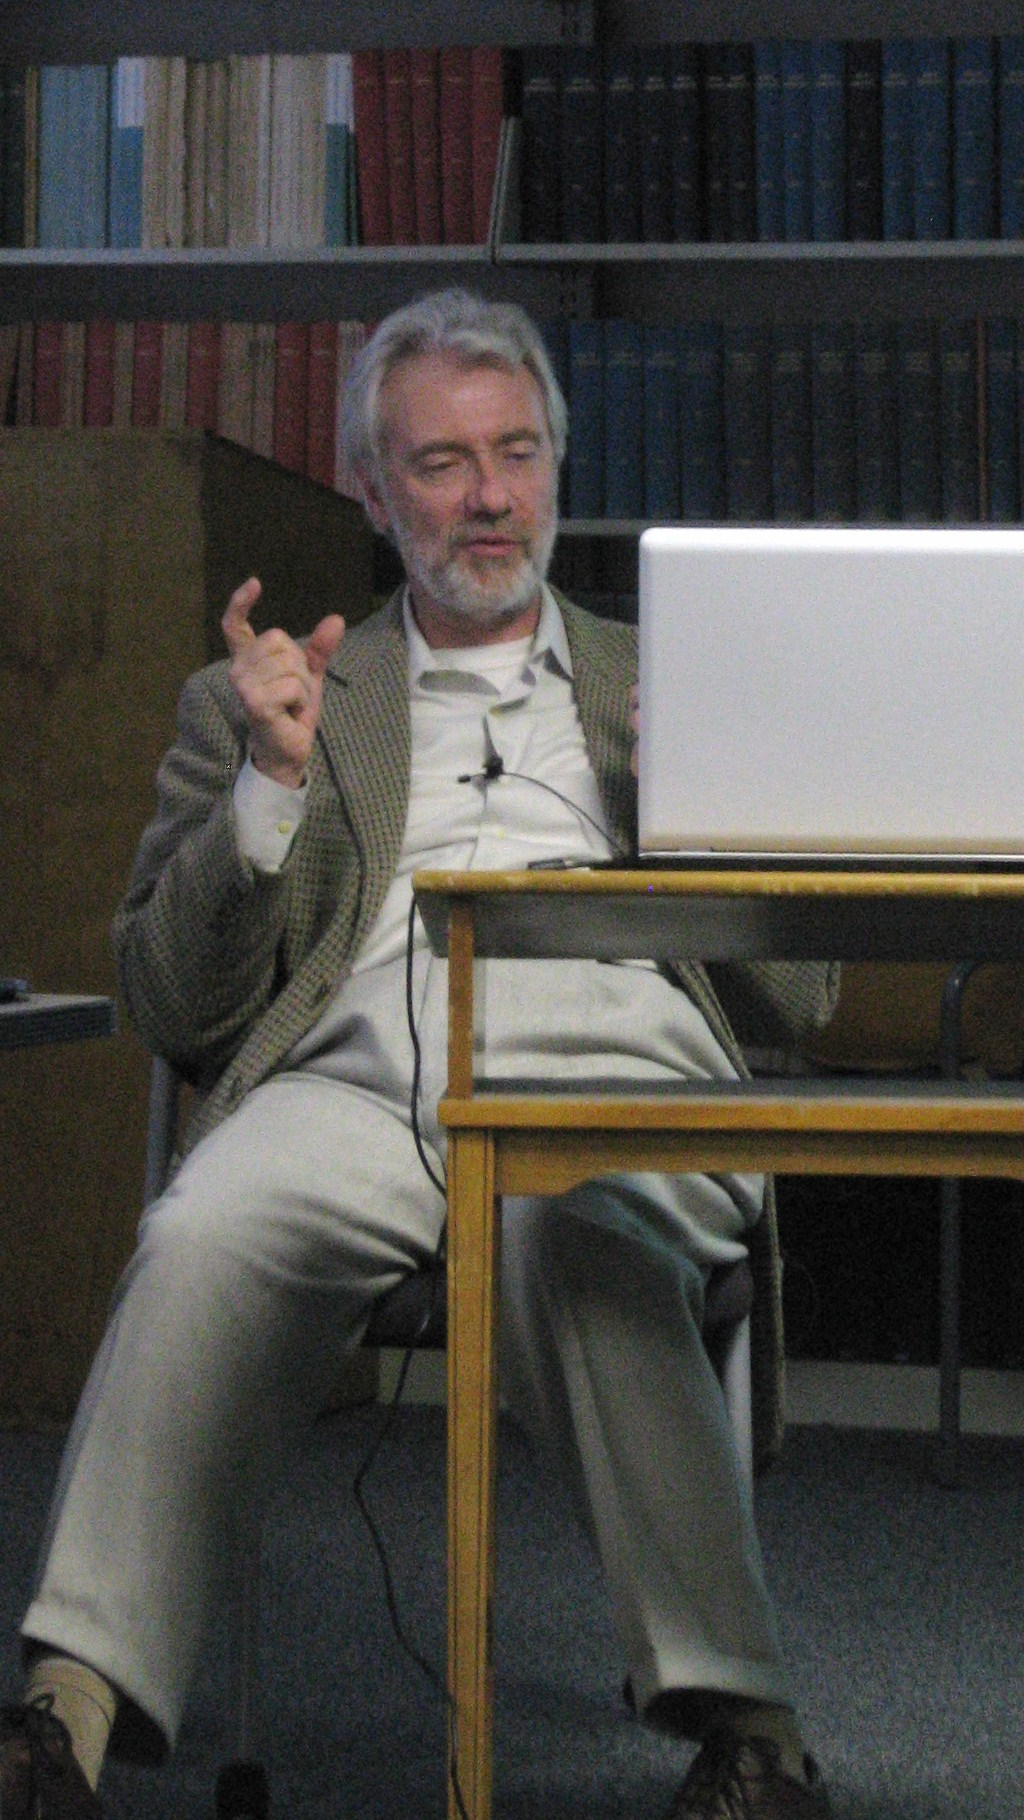 Speaking at UCLA 3/8/2008